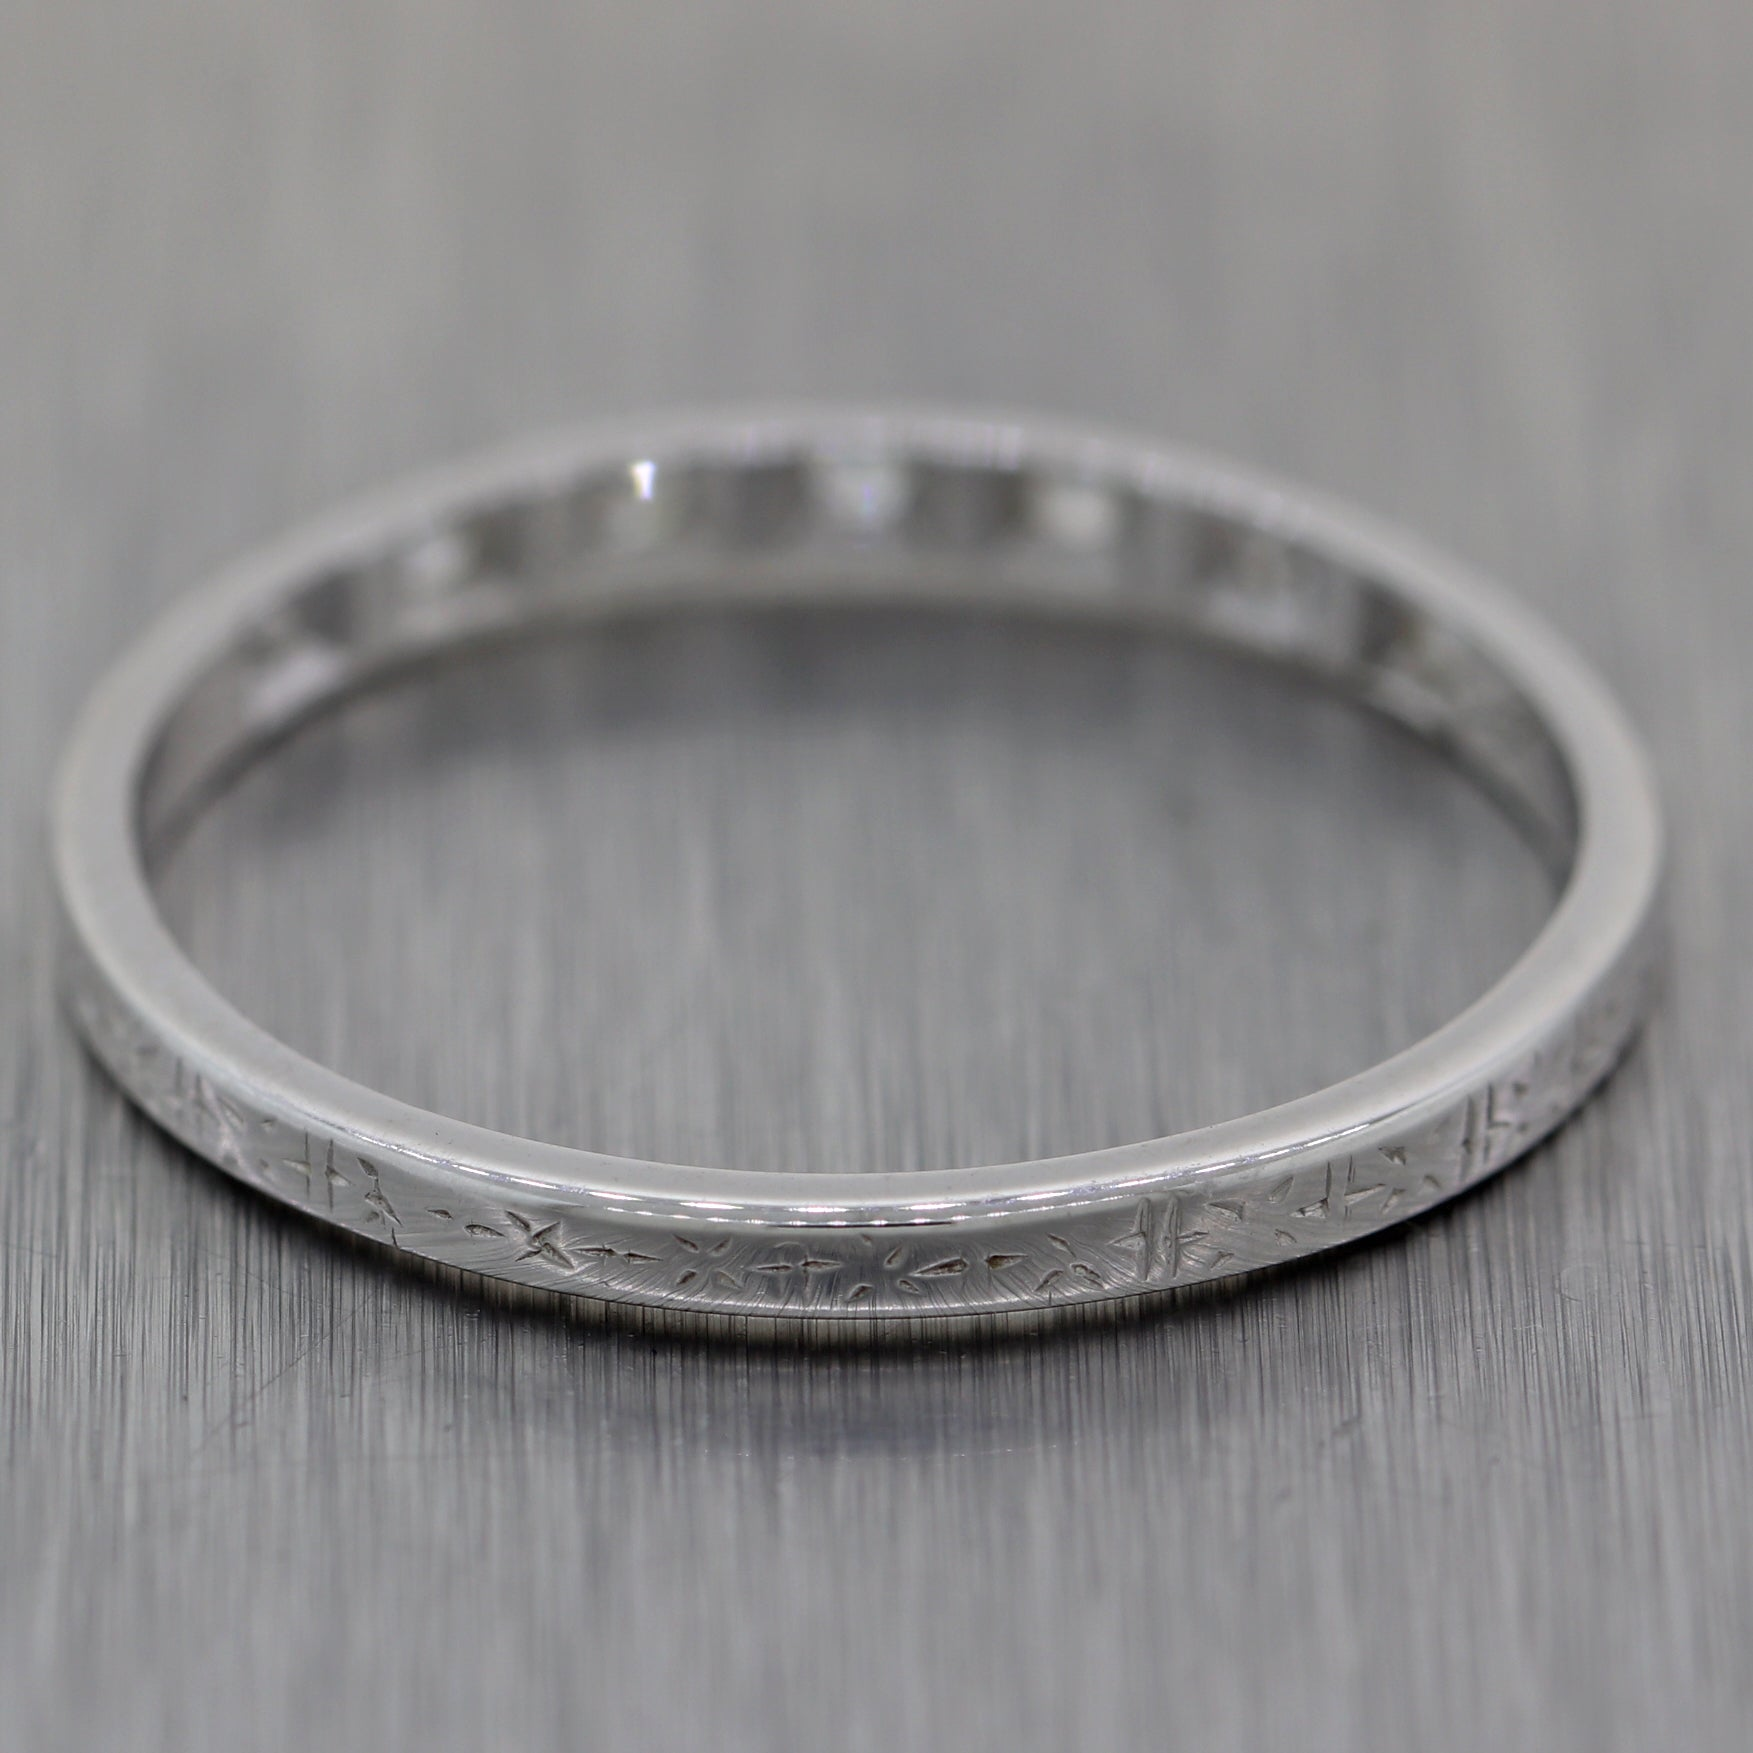 1920's Antique Art Deco 18k White Gold 0.15ctw Diamond Etched Wedding Band Ring